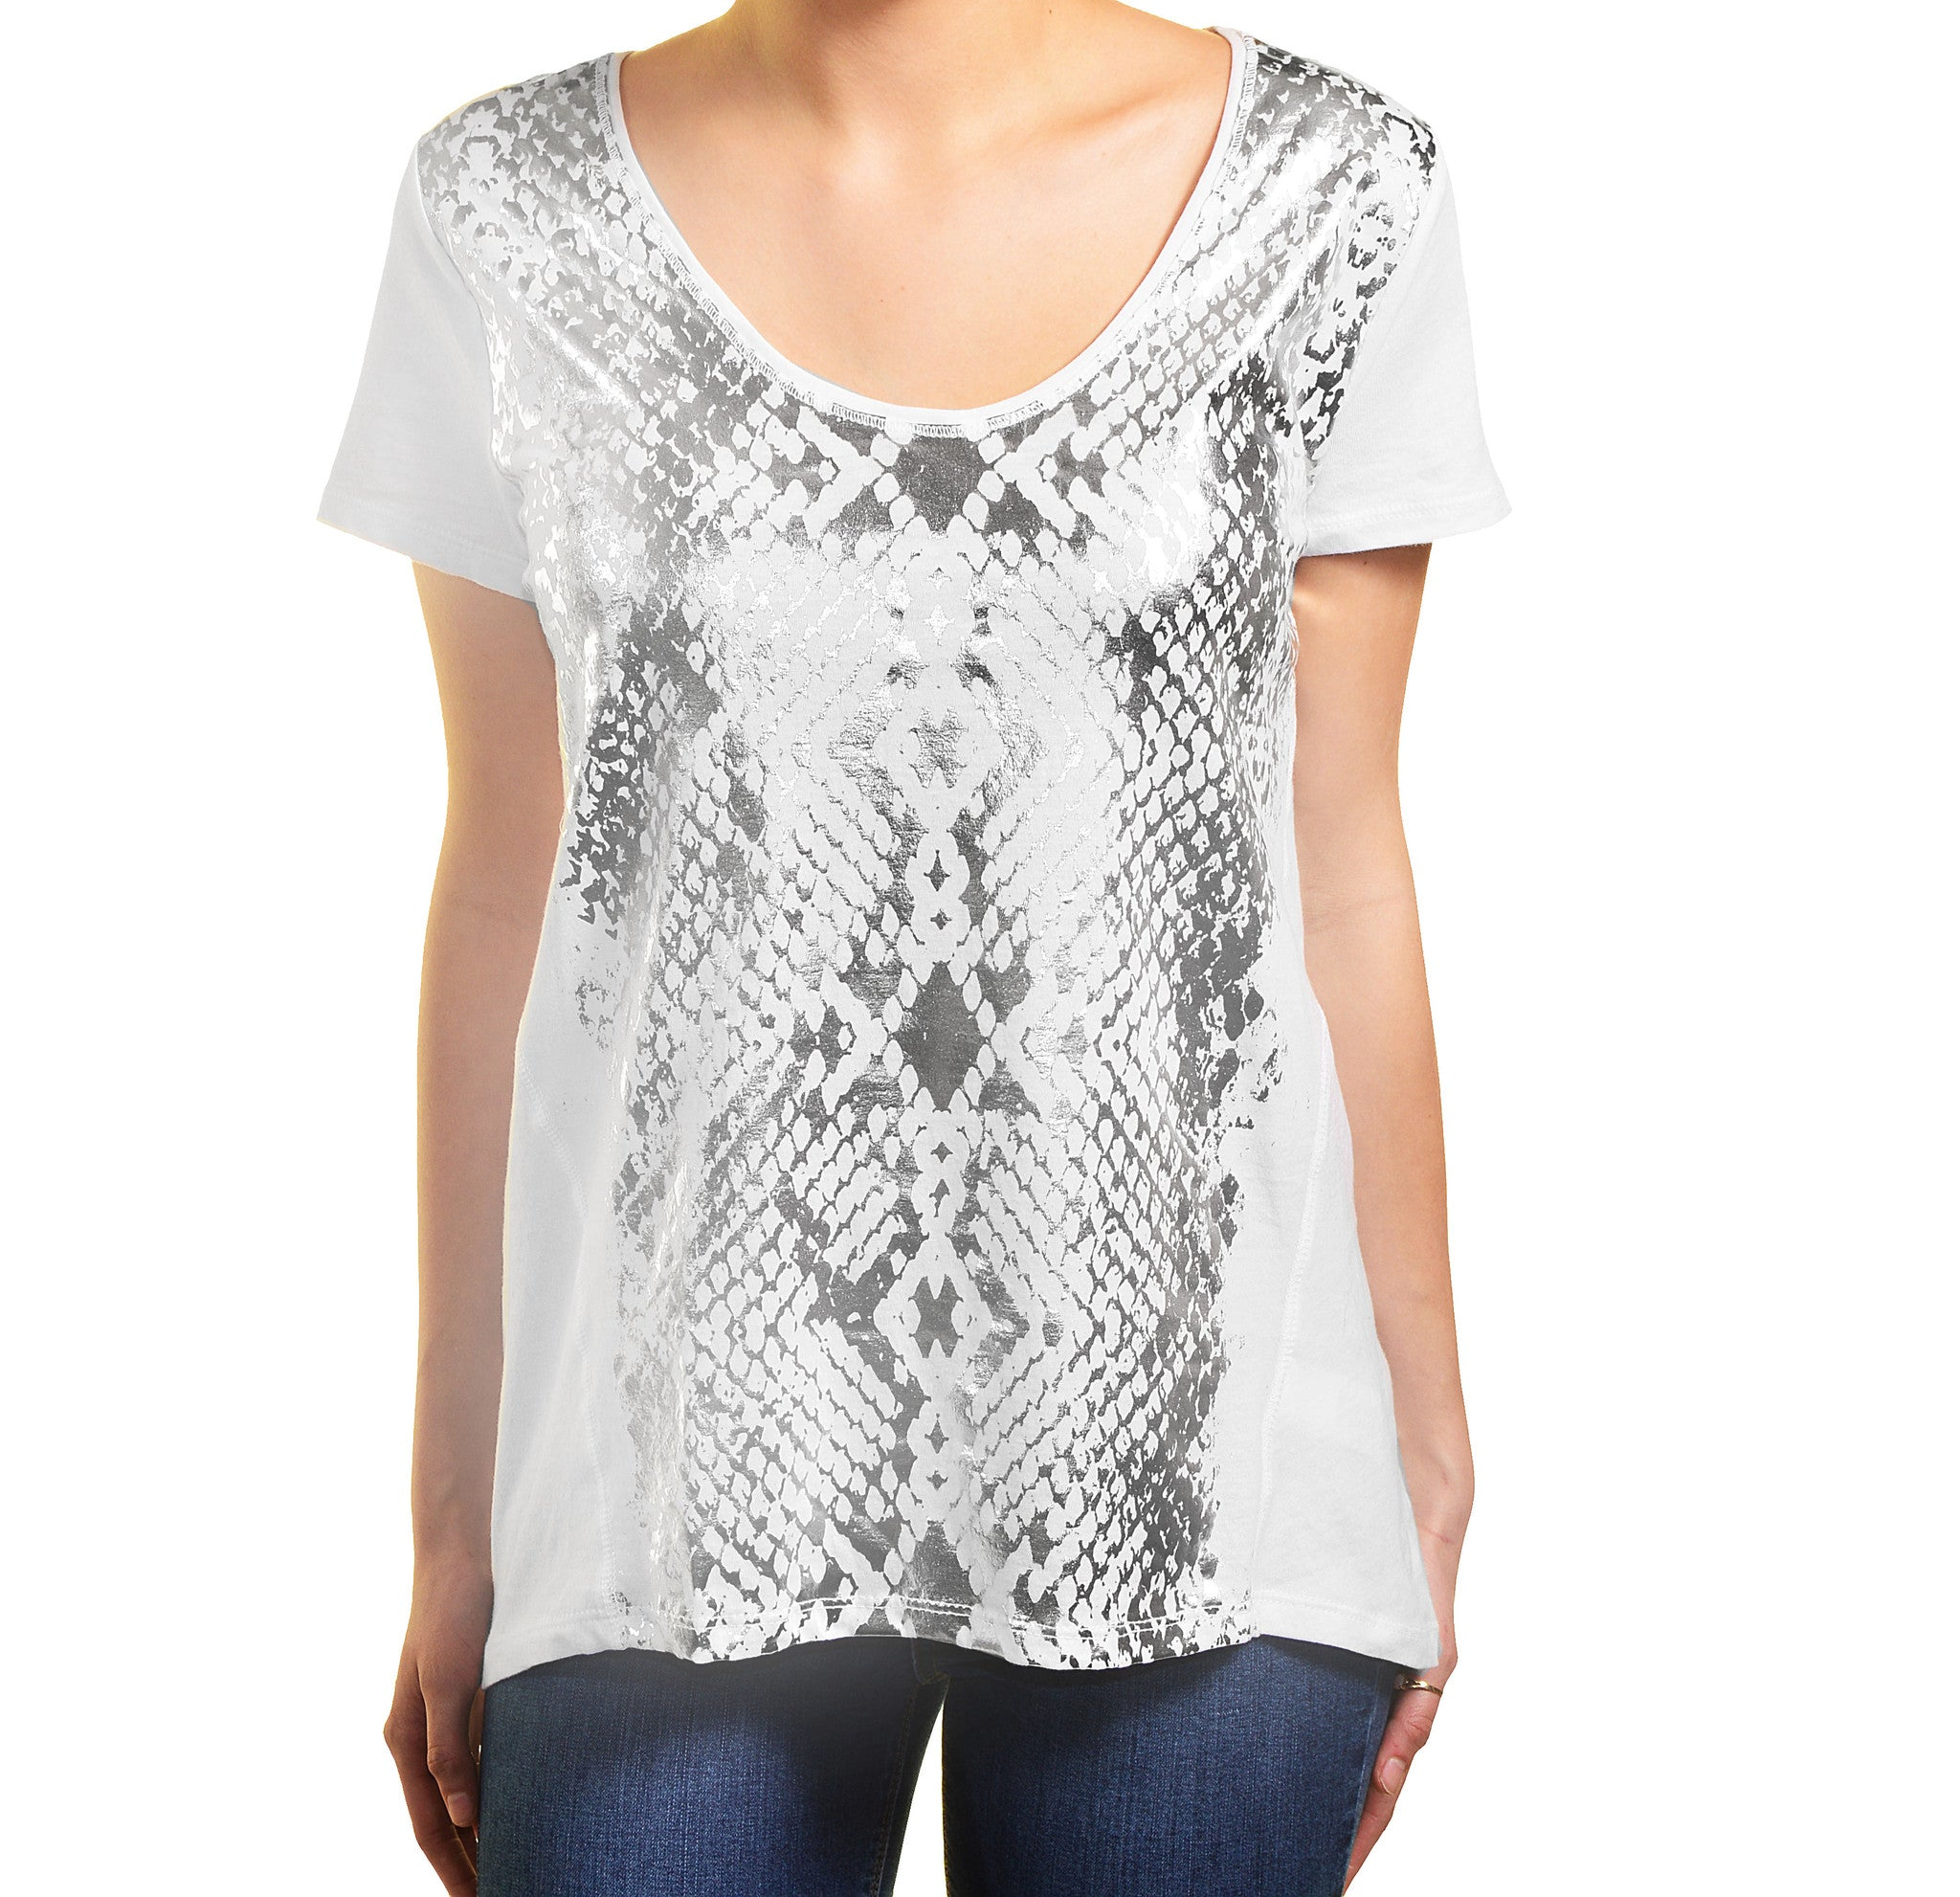 DKNY Jeans Womens Short Sleeve Scoop Neck Tee